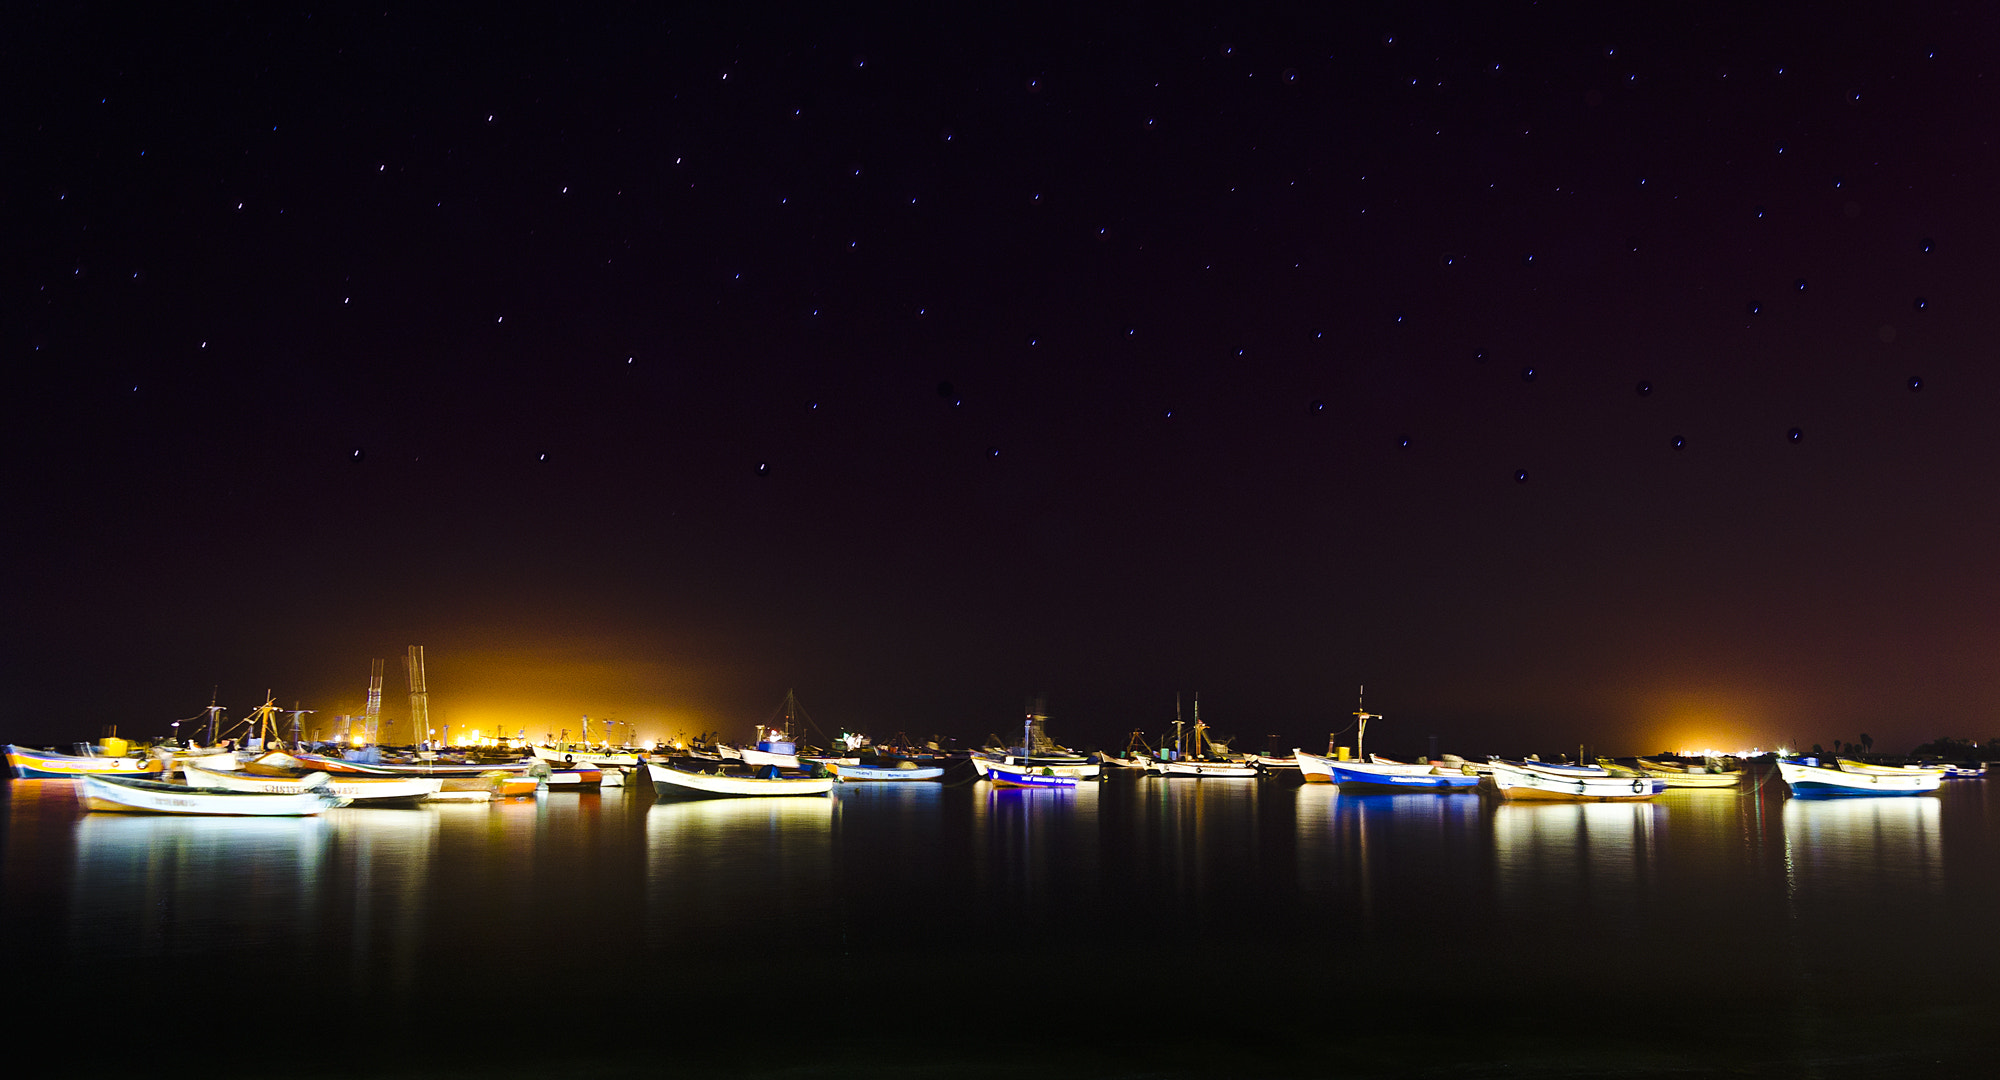 Photograph Night time  by Mike Joints on 500px